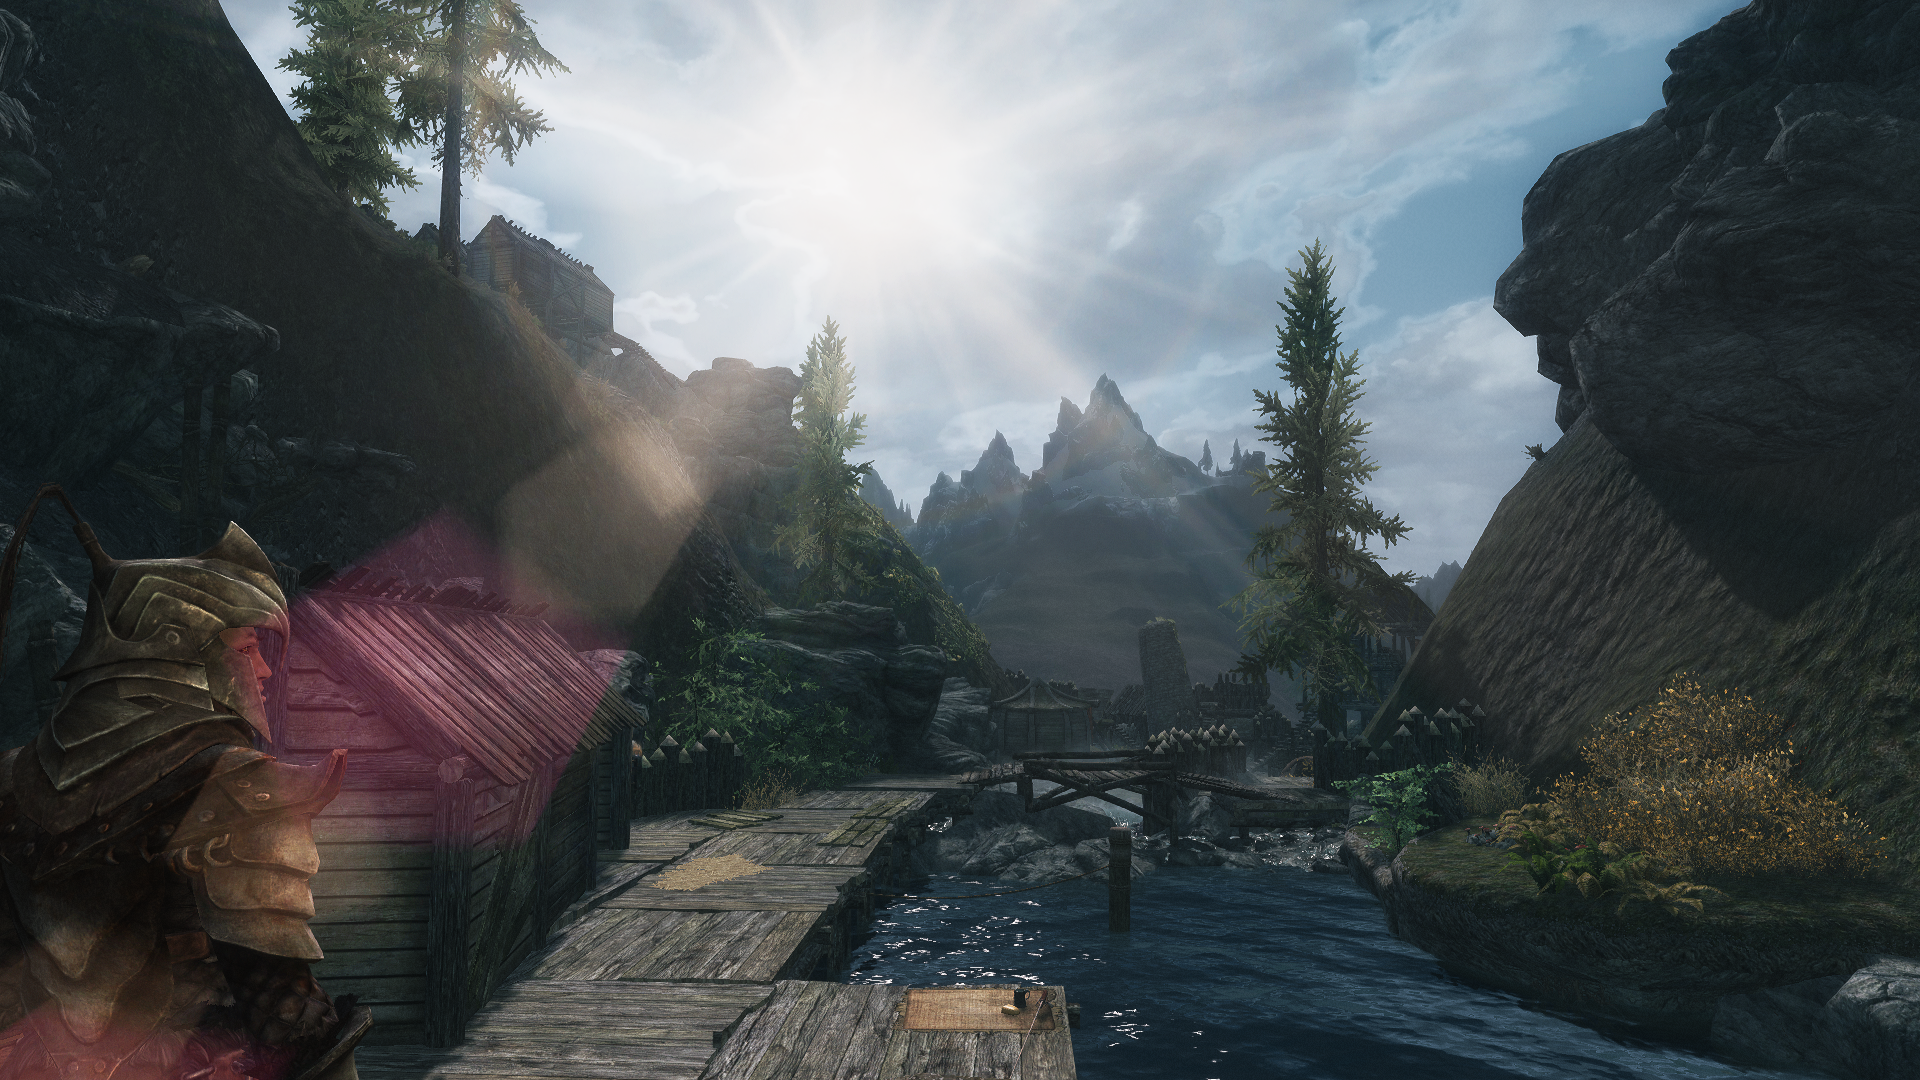 Skyrim Expansion Mod 'Lordbound' Shows Off Environments In New Trailer